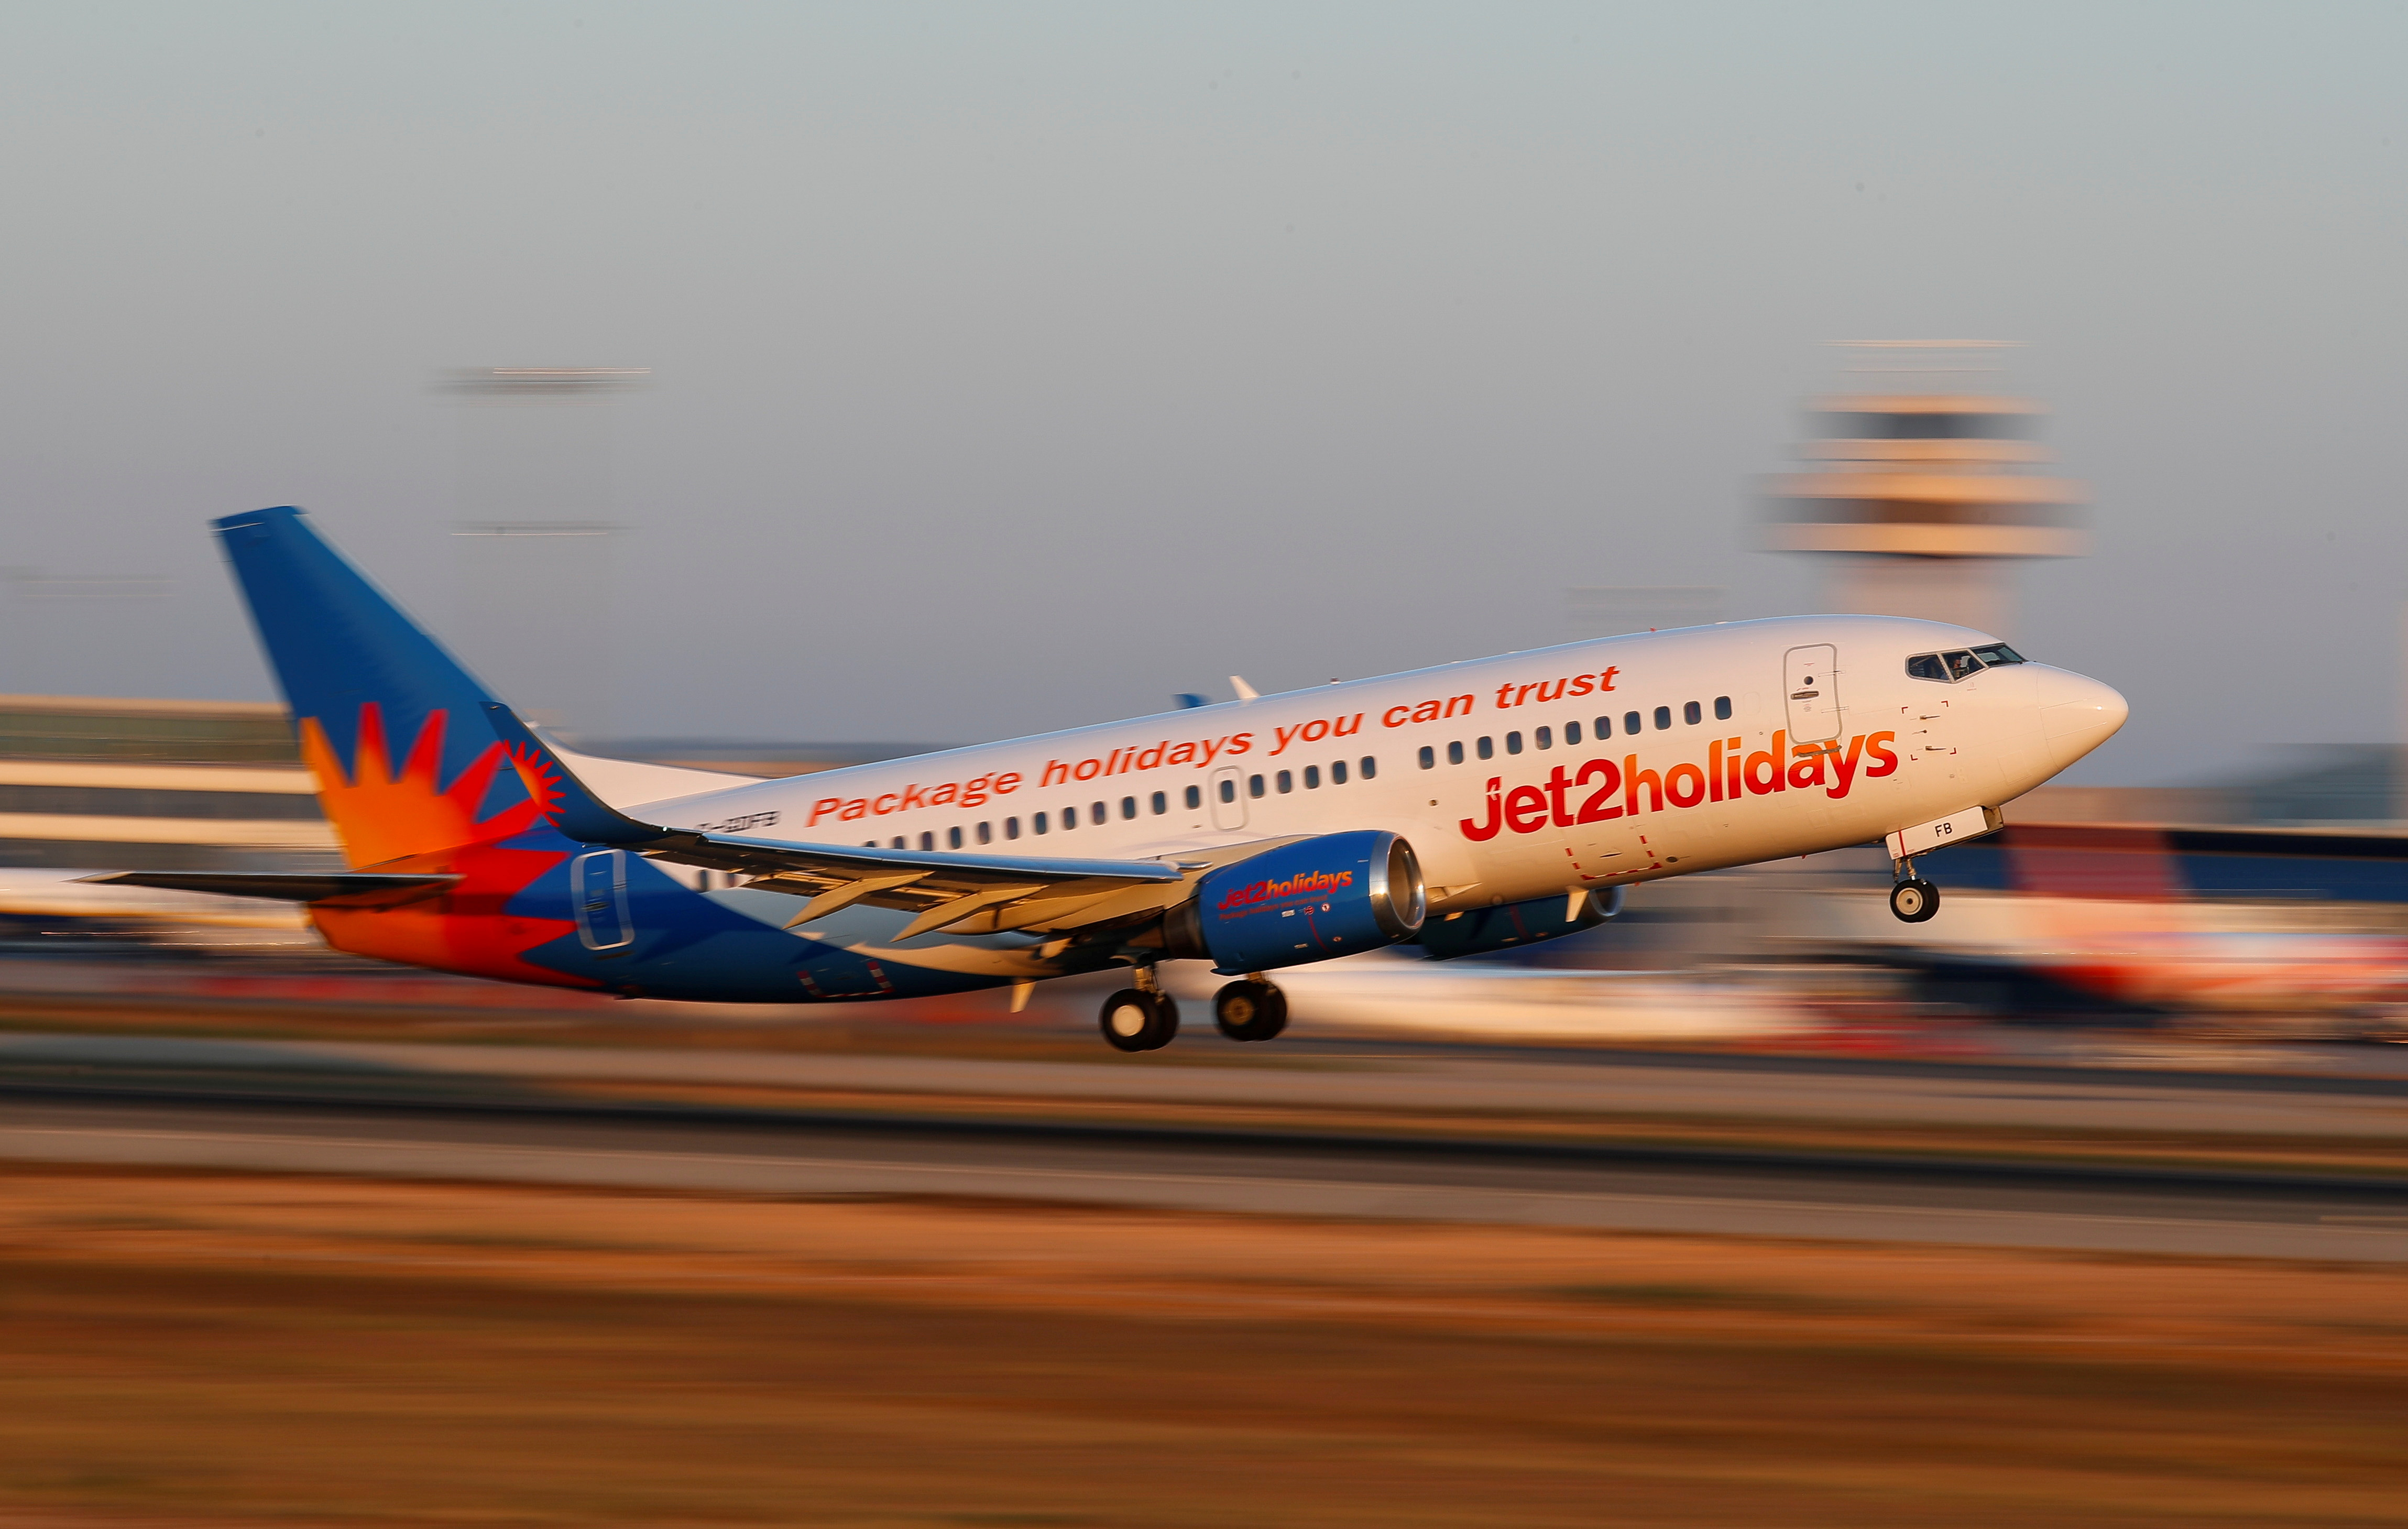 A Jet2 airplane takes off from the airport in Palma de Mallorca, Spain, July 29, 2018. Picture taken July 29, 2018.  REUTERS/Paul Hanna/File Photo